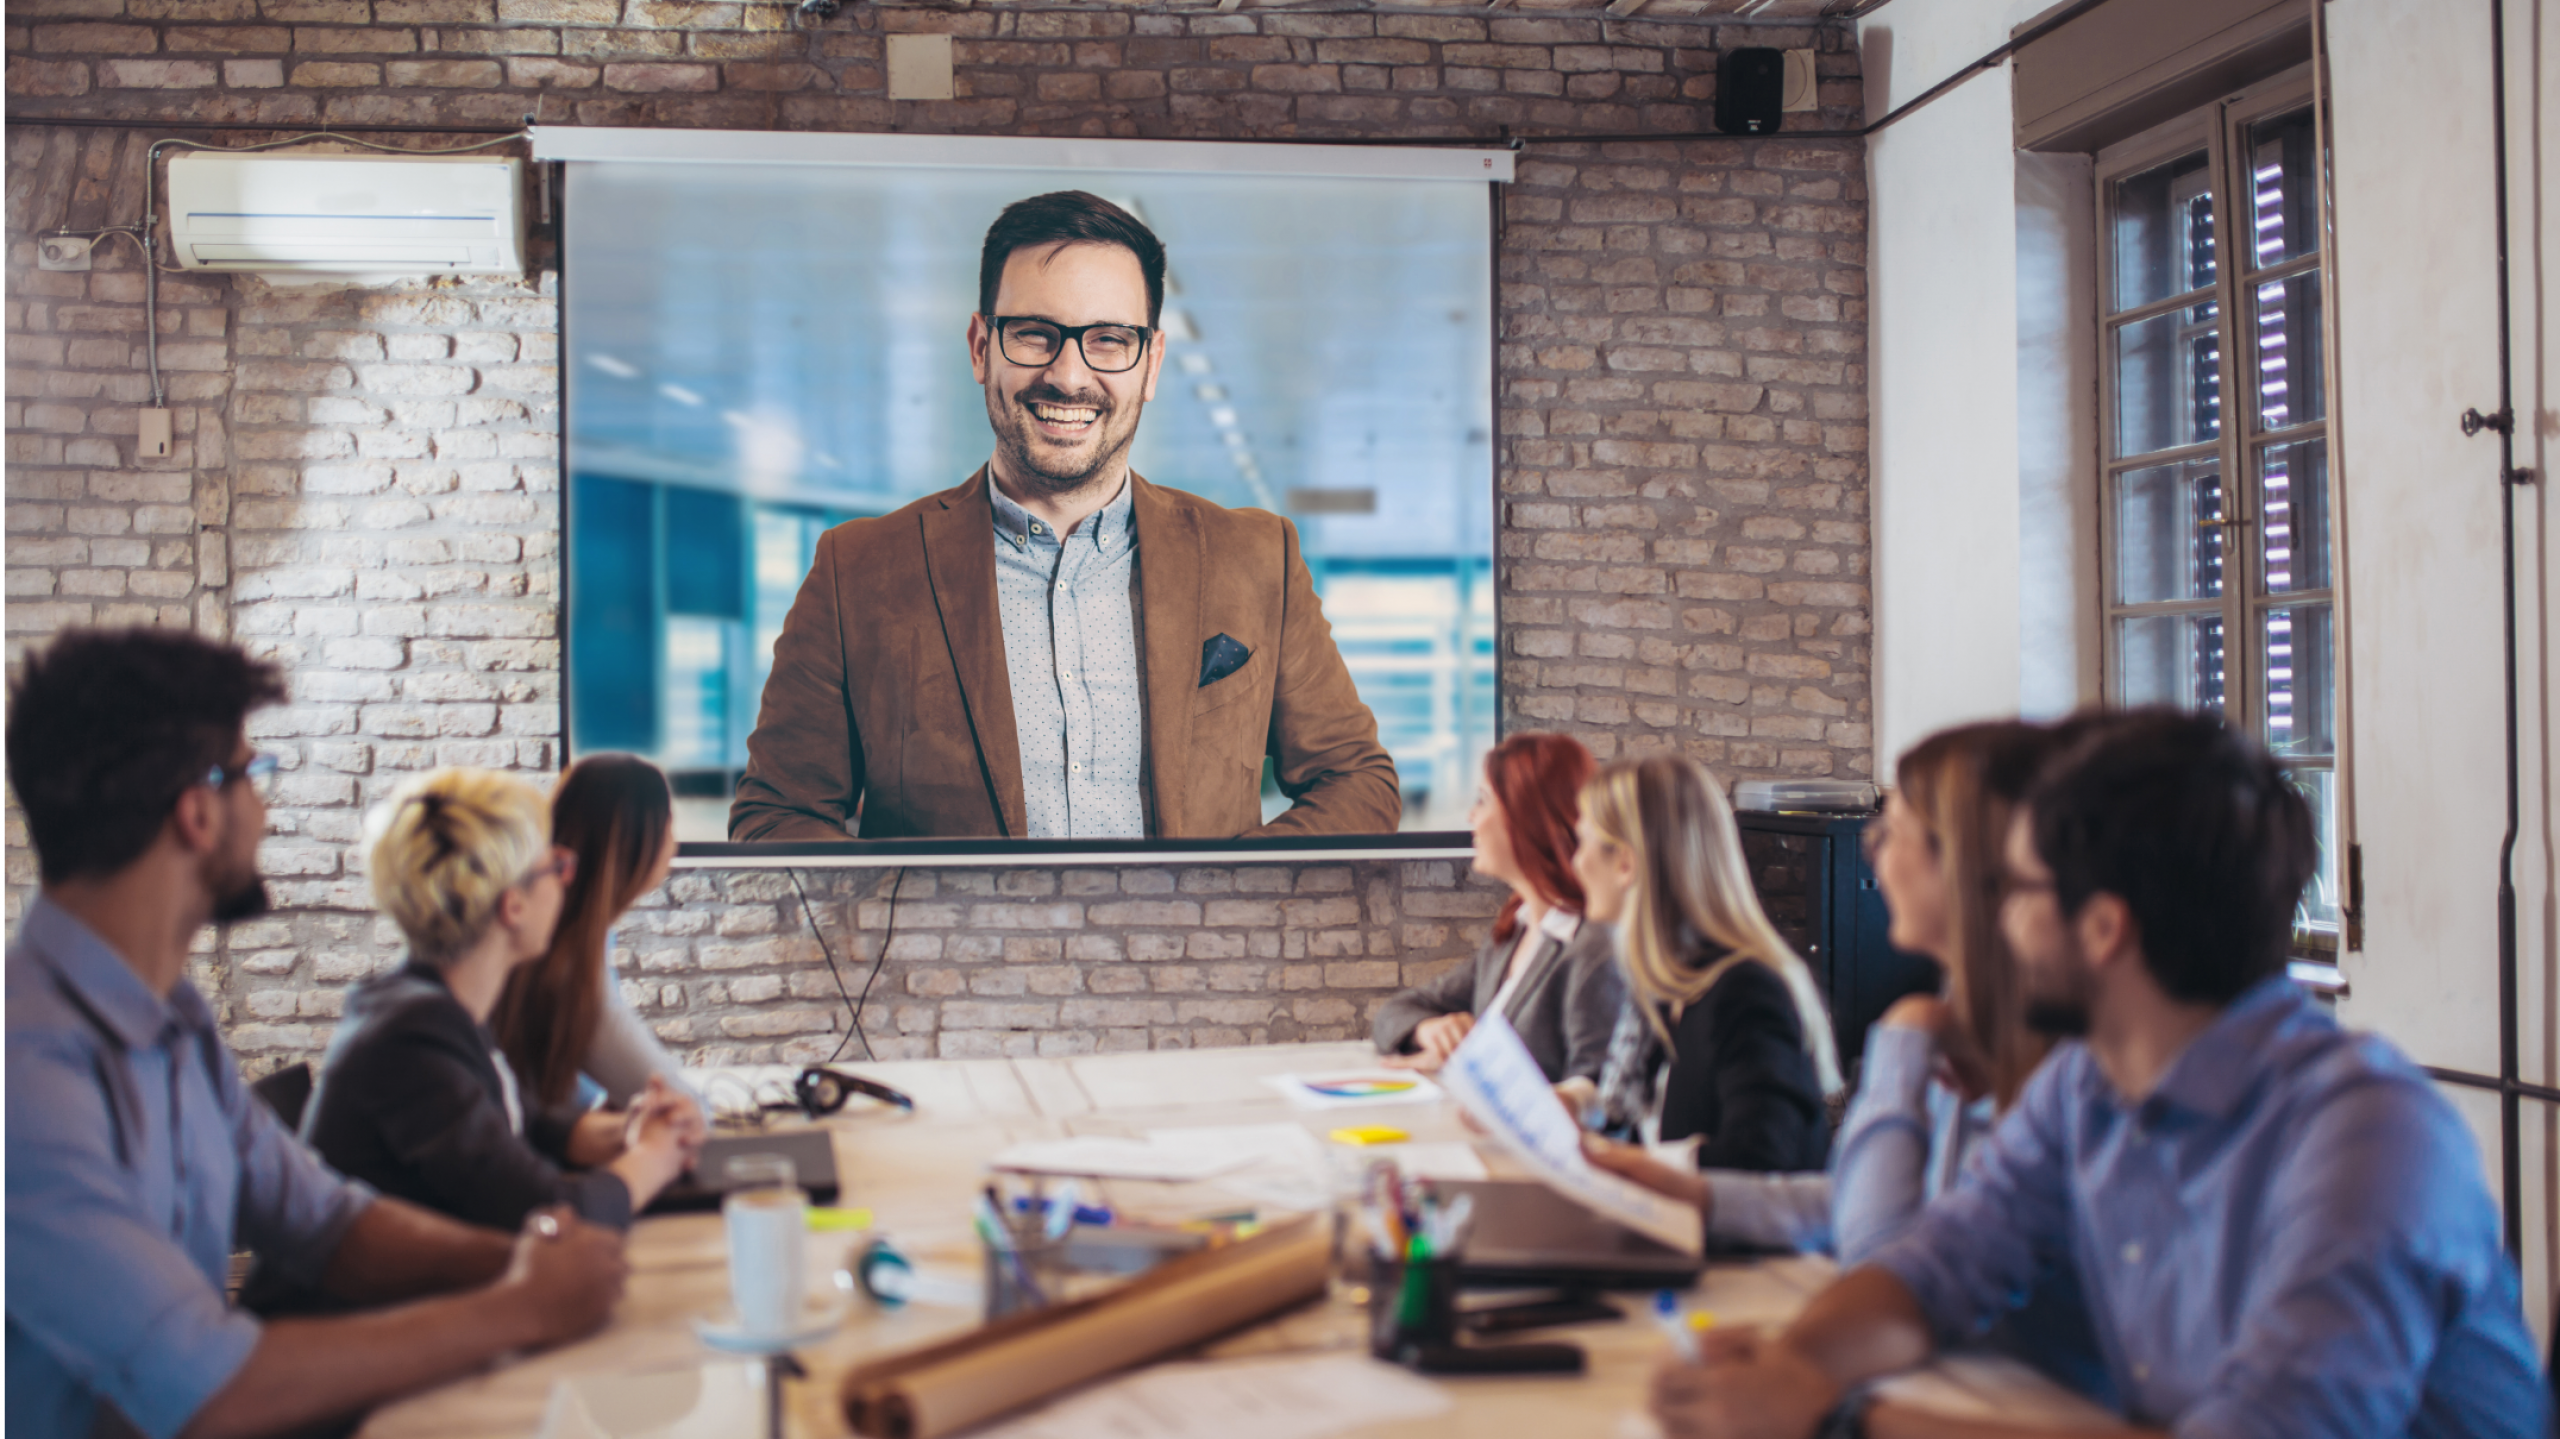 Video Conference - large pic of presenter Image